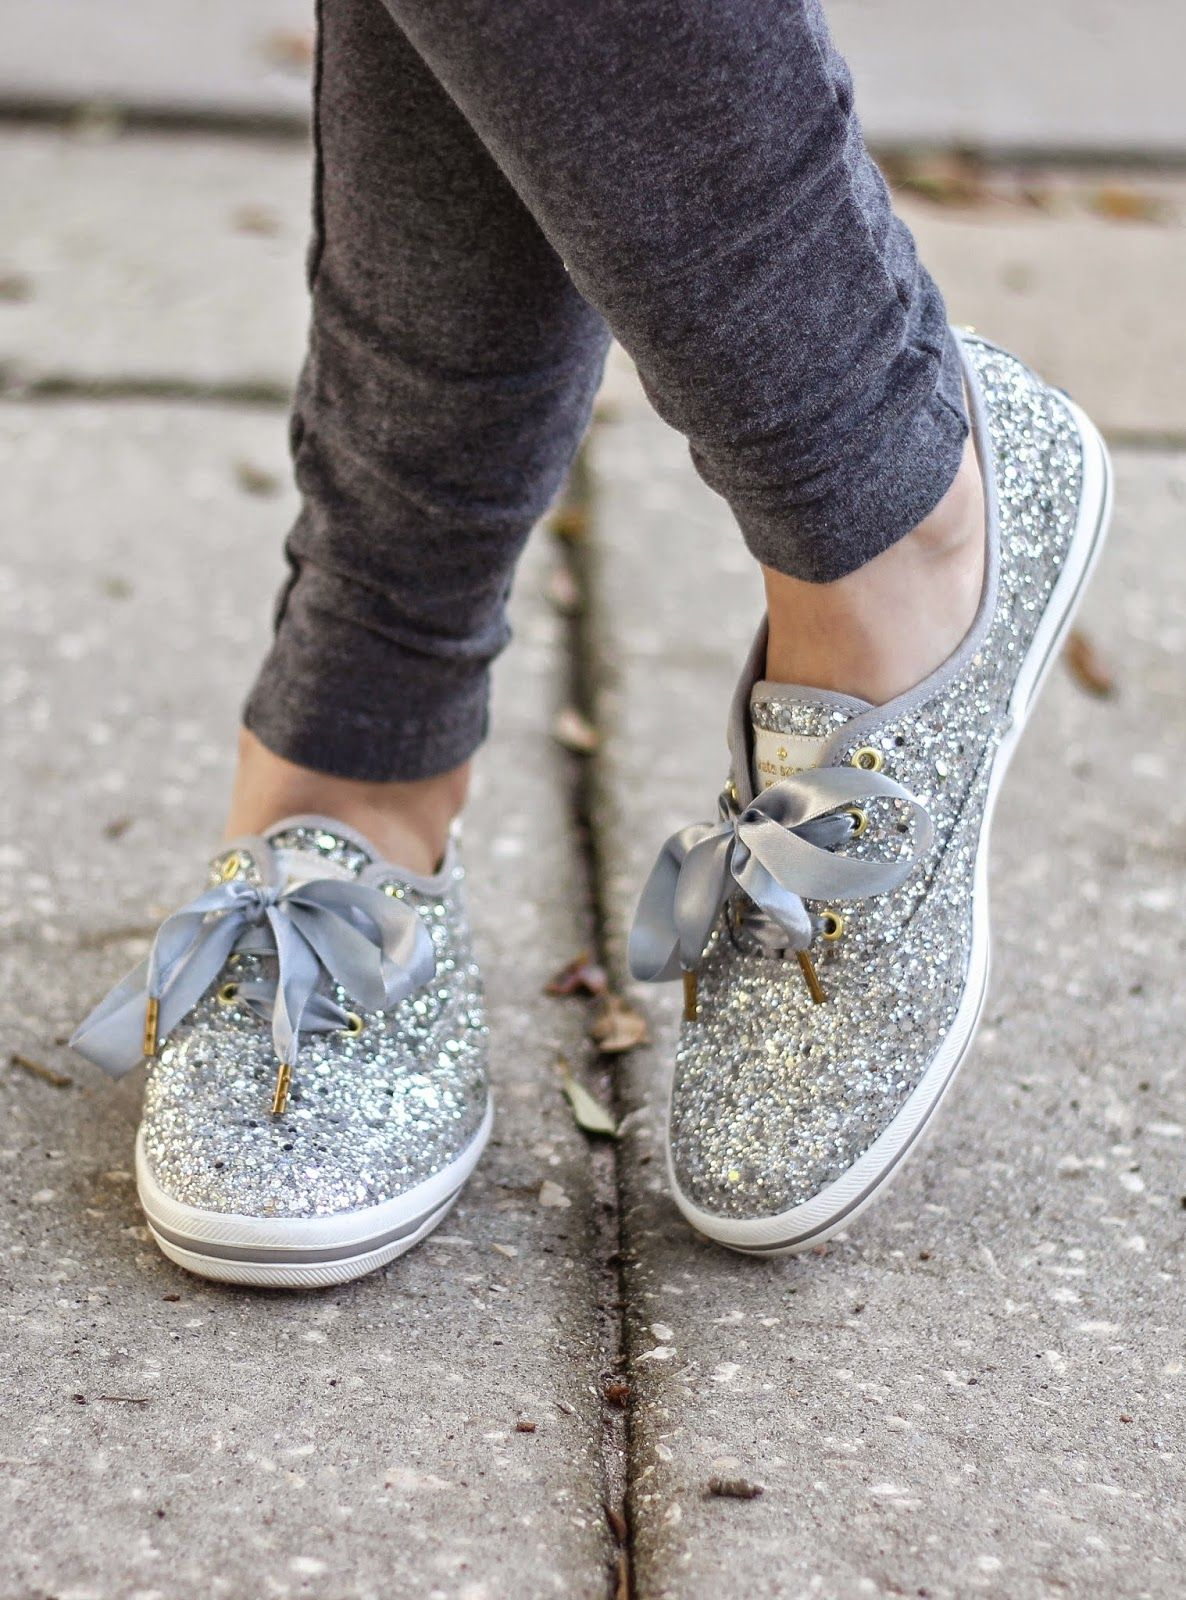 Kelly Elizabeth Style: Skinny Sweats and Glitter Shoes - skinny sweatpants:  Target; silver